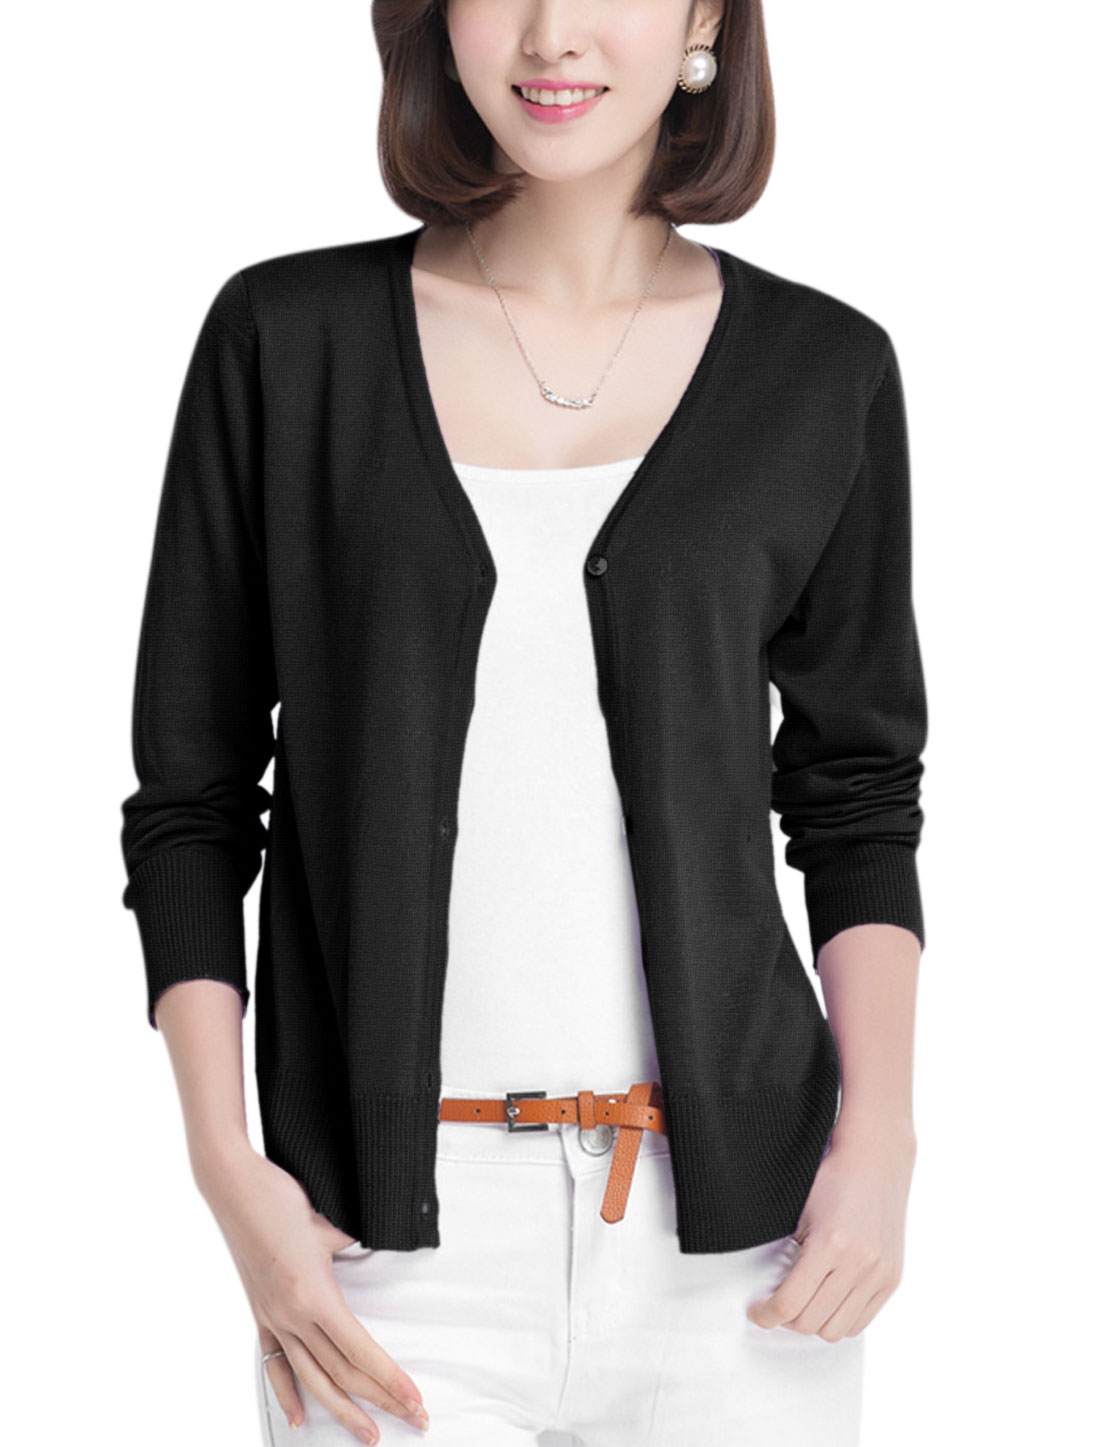 Lady V Neck Single Breasted Fashionable Casual Knit Cardigan Black S